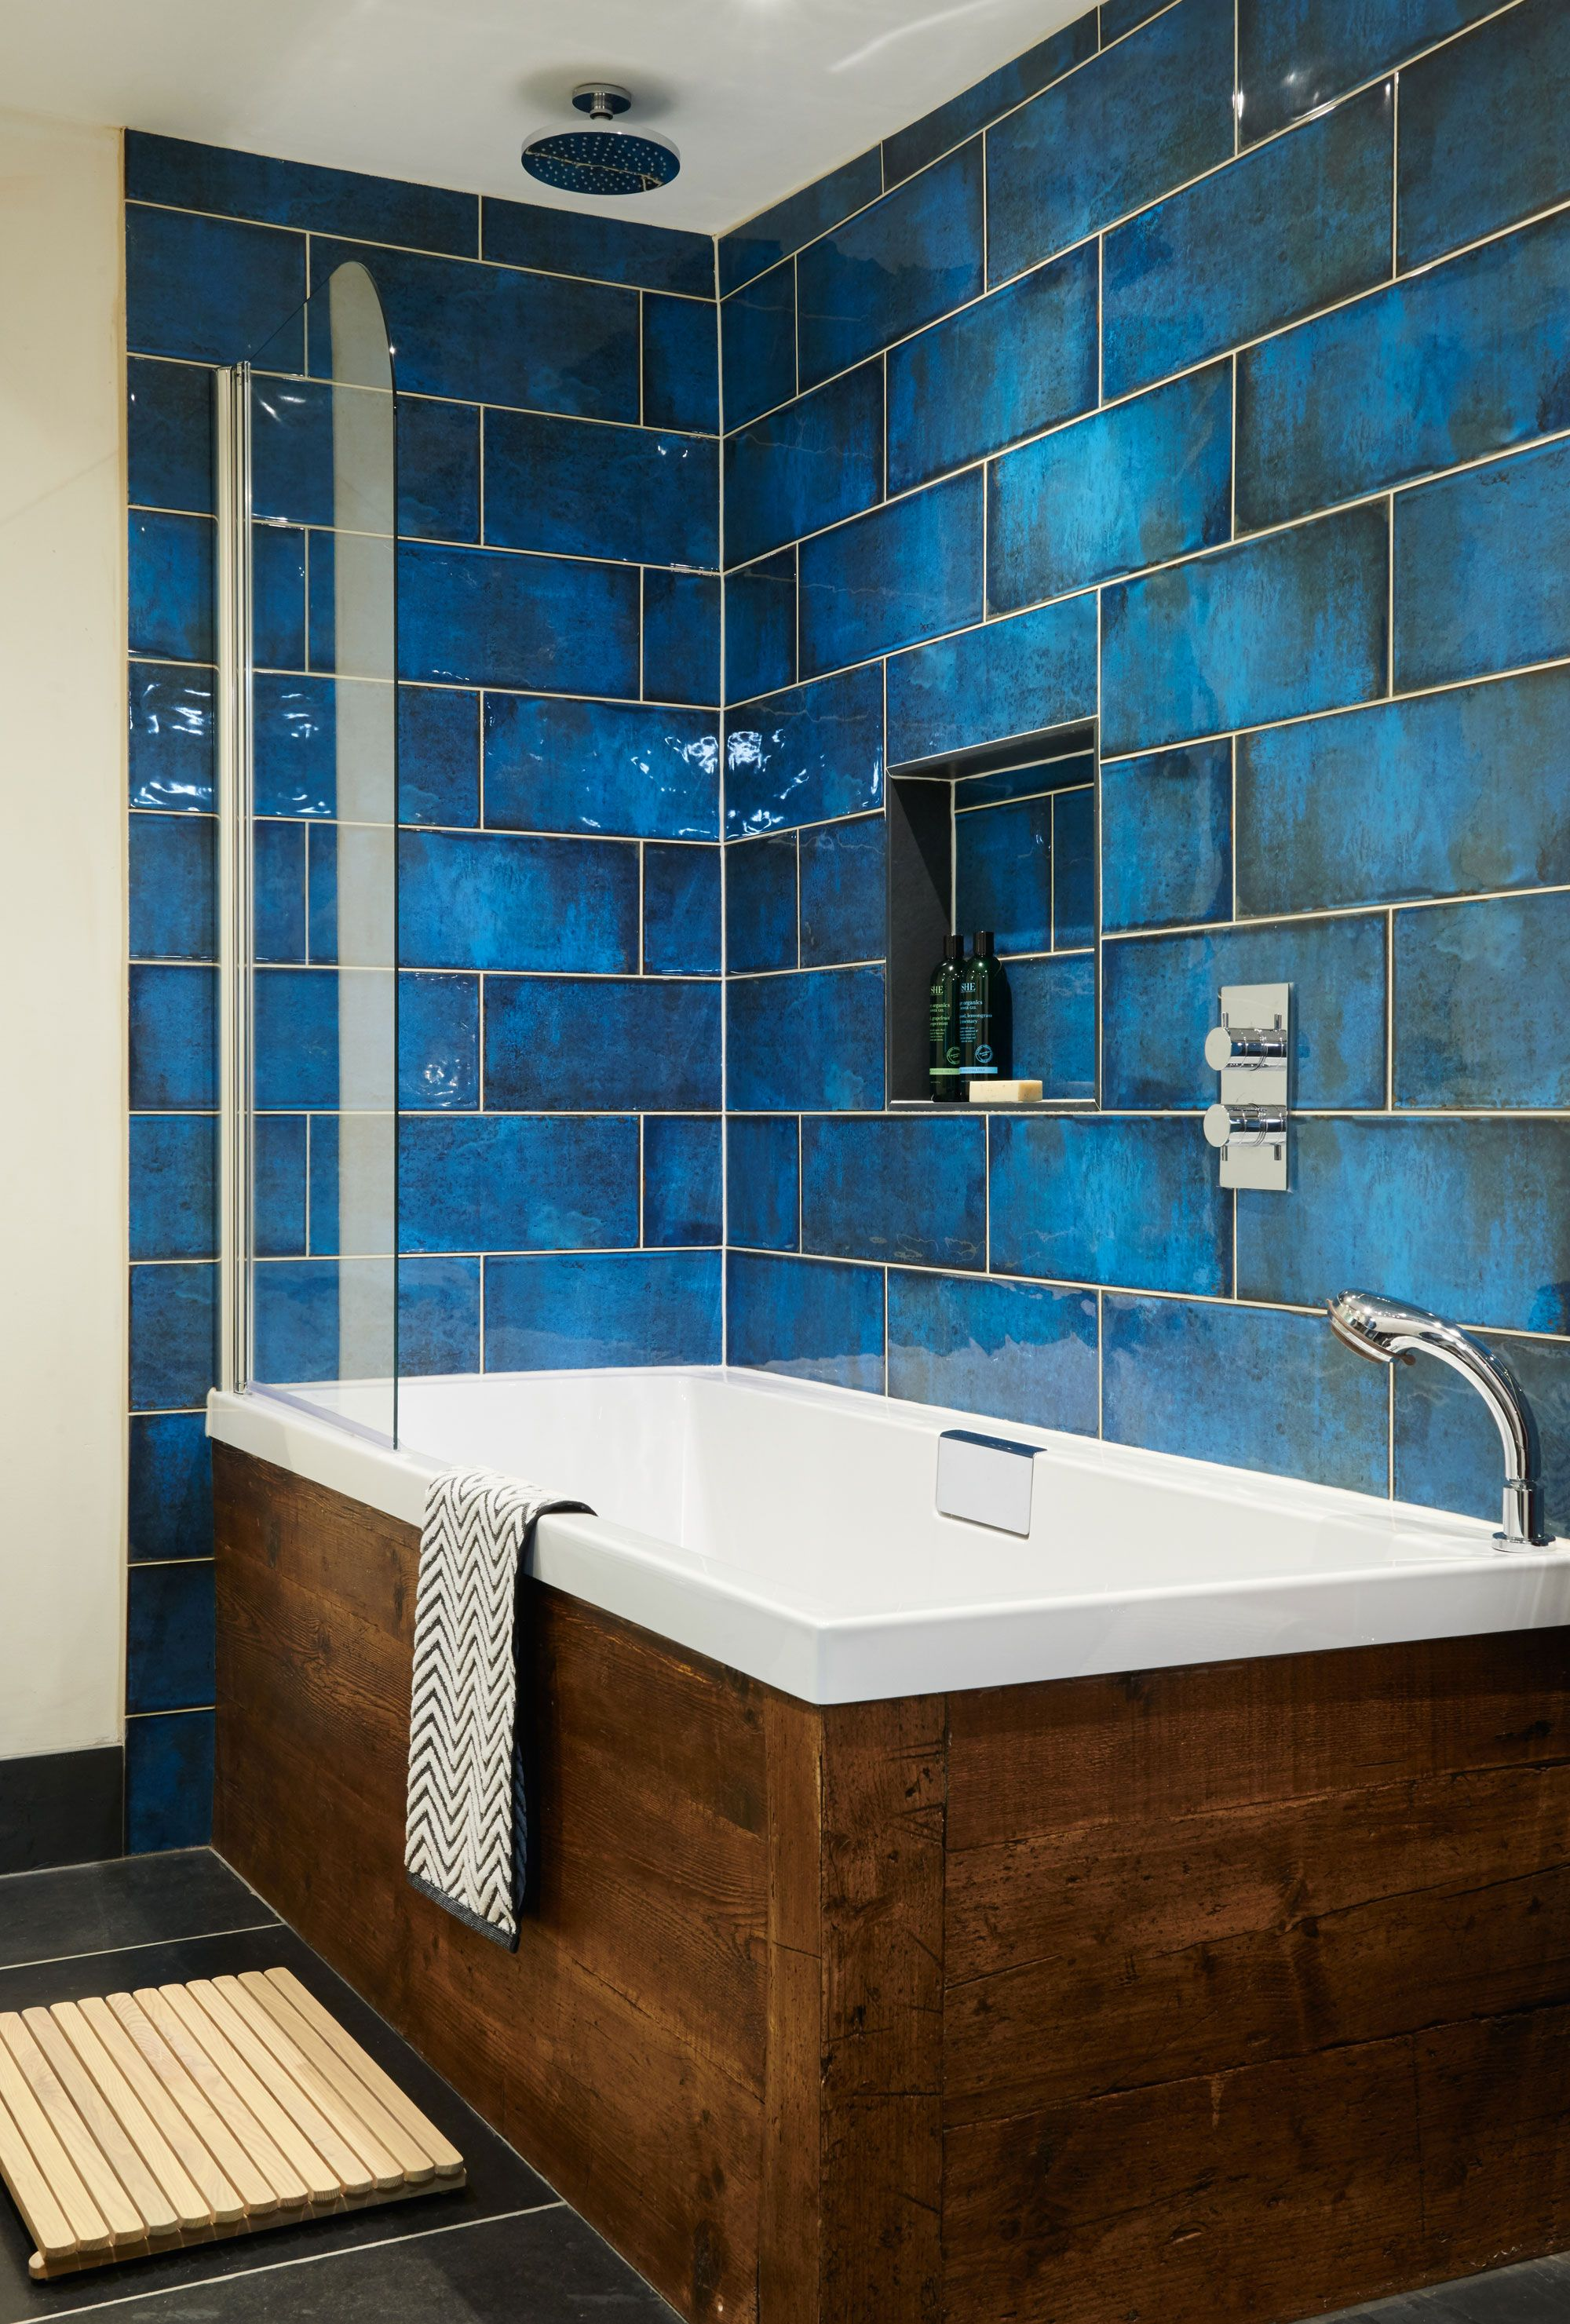 Montblanc Blue Ceramic Tile | Pinterest | Factors, Originals and Walls